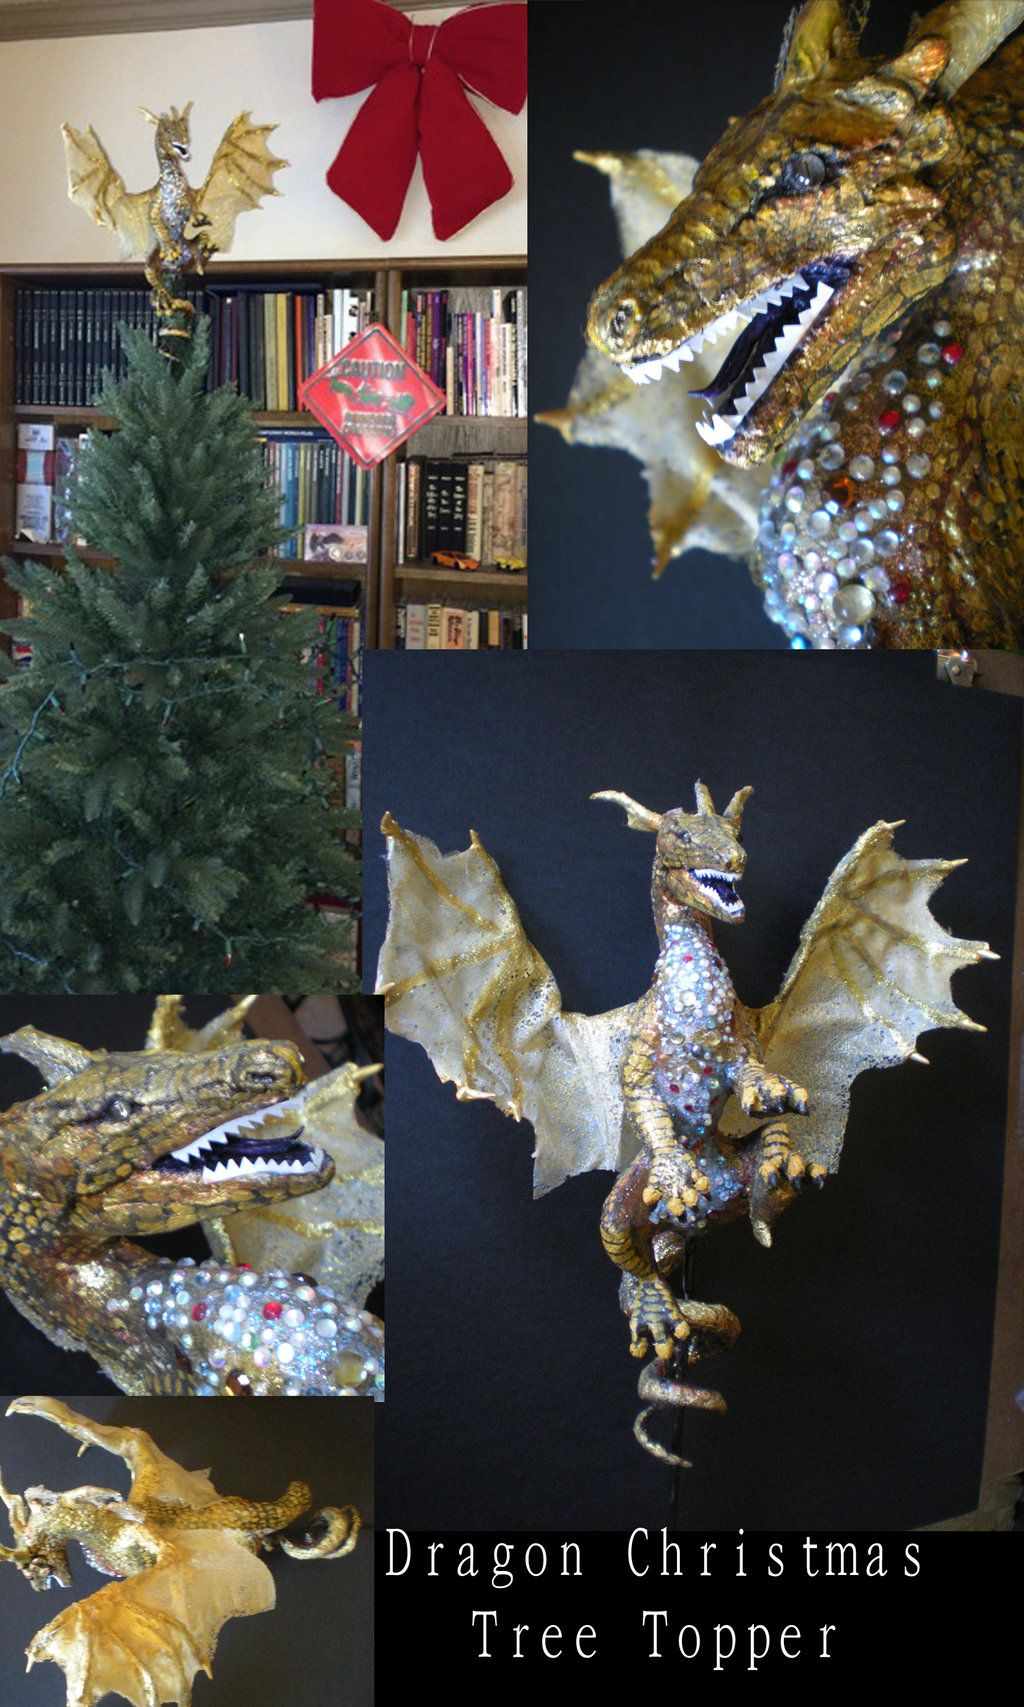 Dragon Christmas tree topper by Shadowinddeviantartcom on